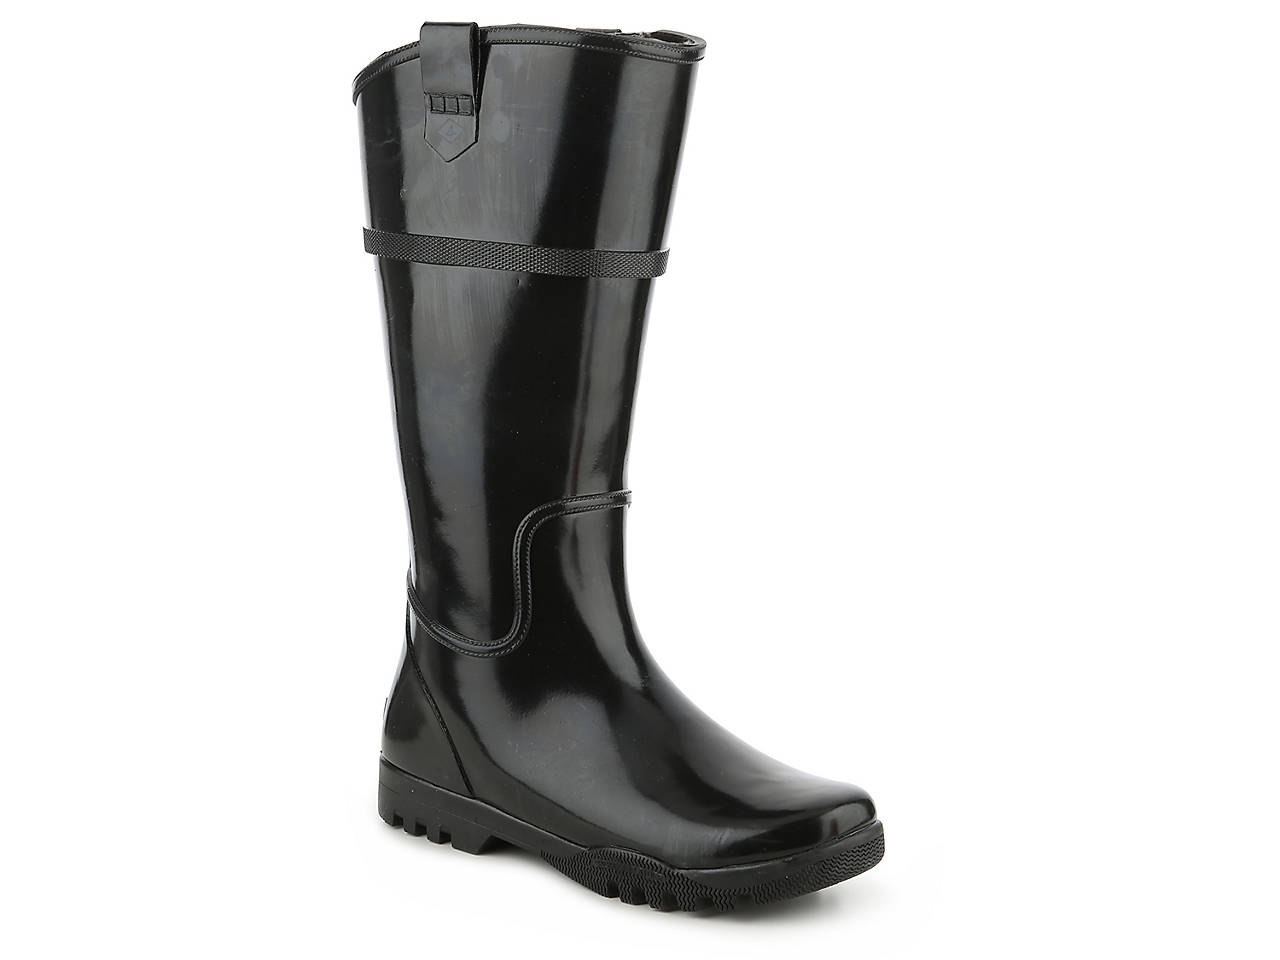 f69643c1c9b Sperry Top-Sider Nellie Kate Rain Boot Women s Shoes